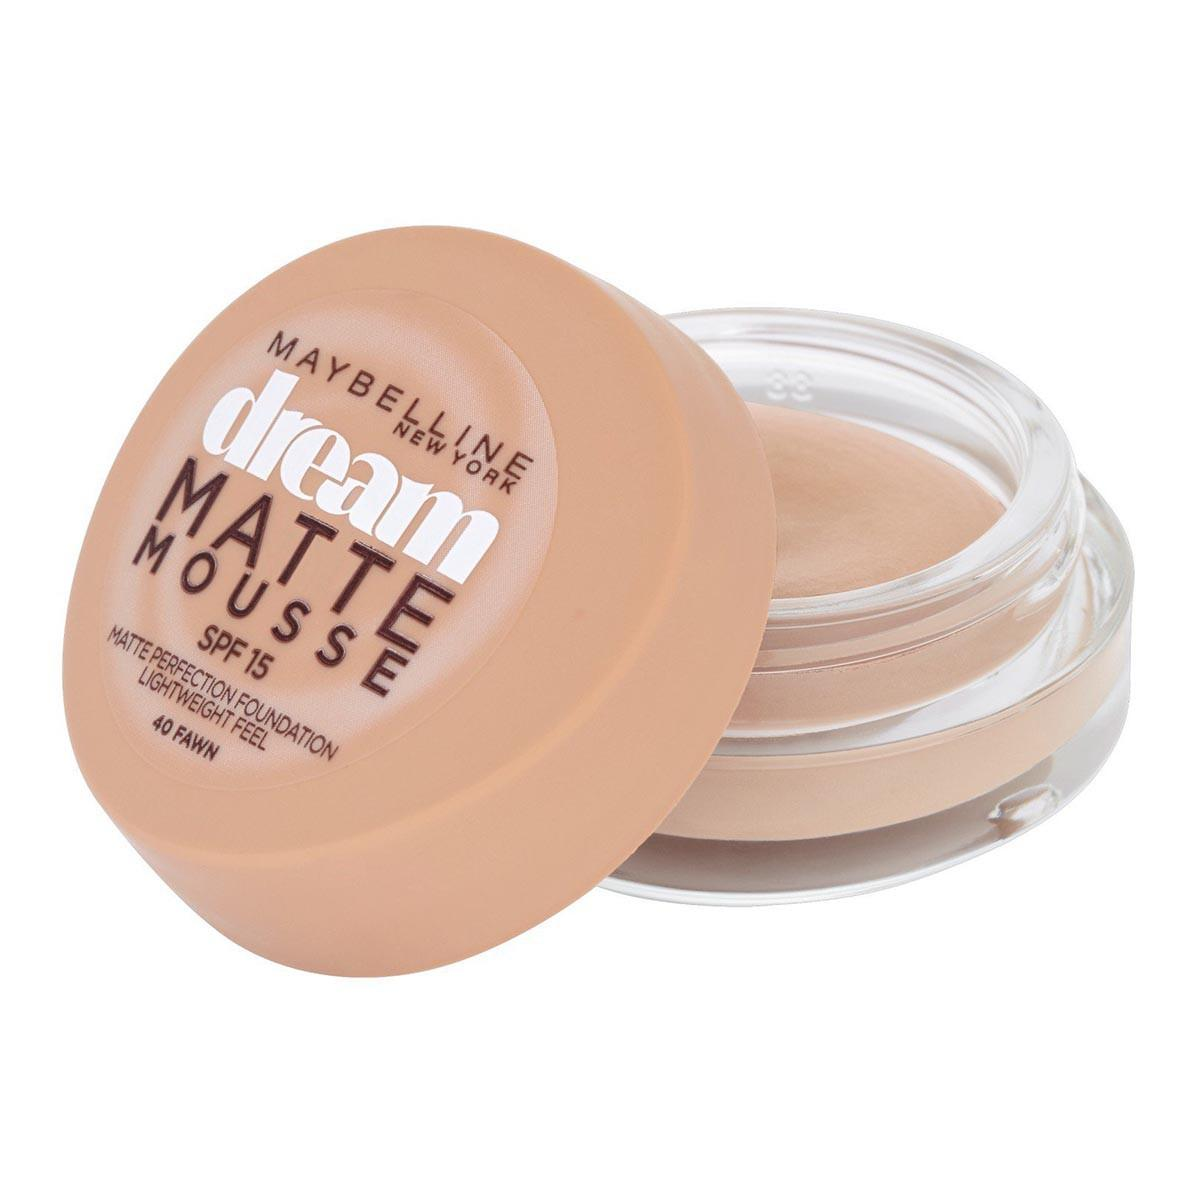 Maybelline Dream Mat Mousse 40 Fawn